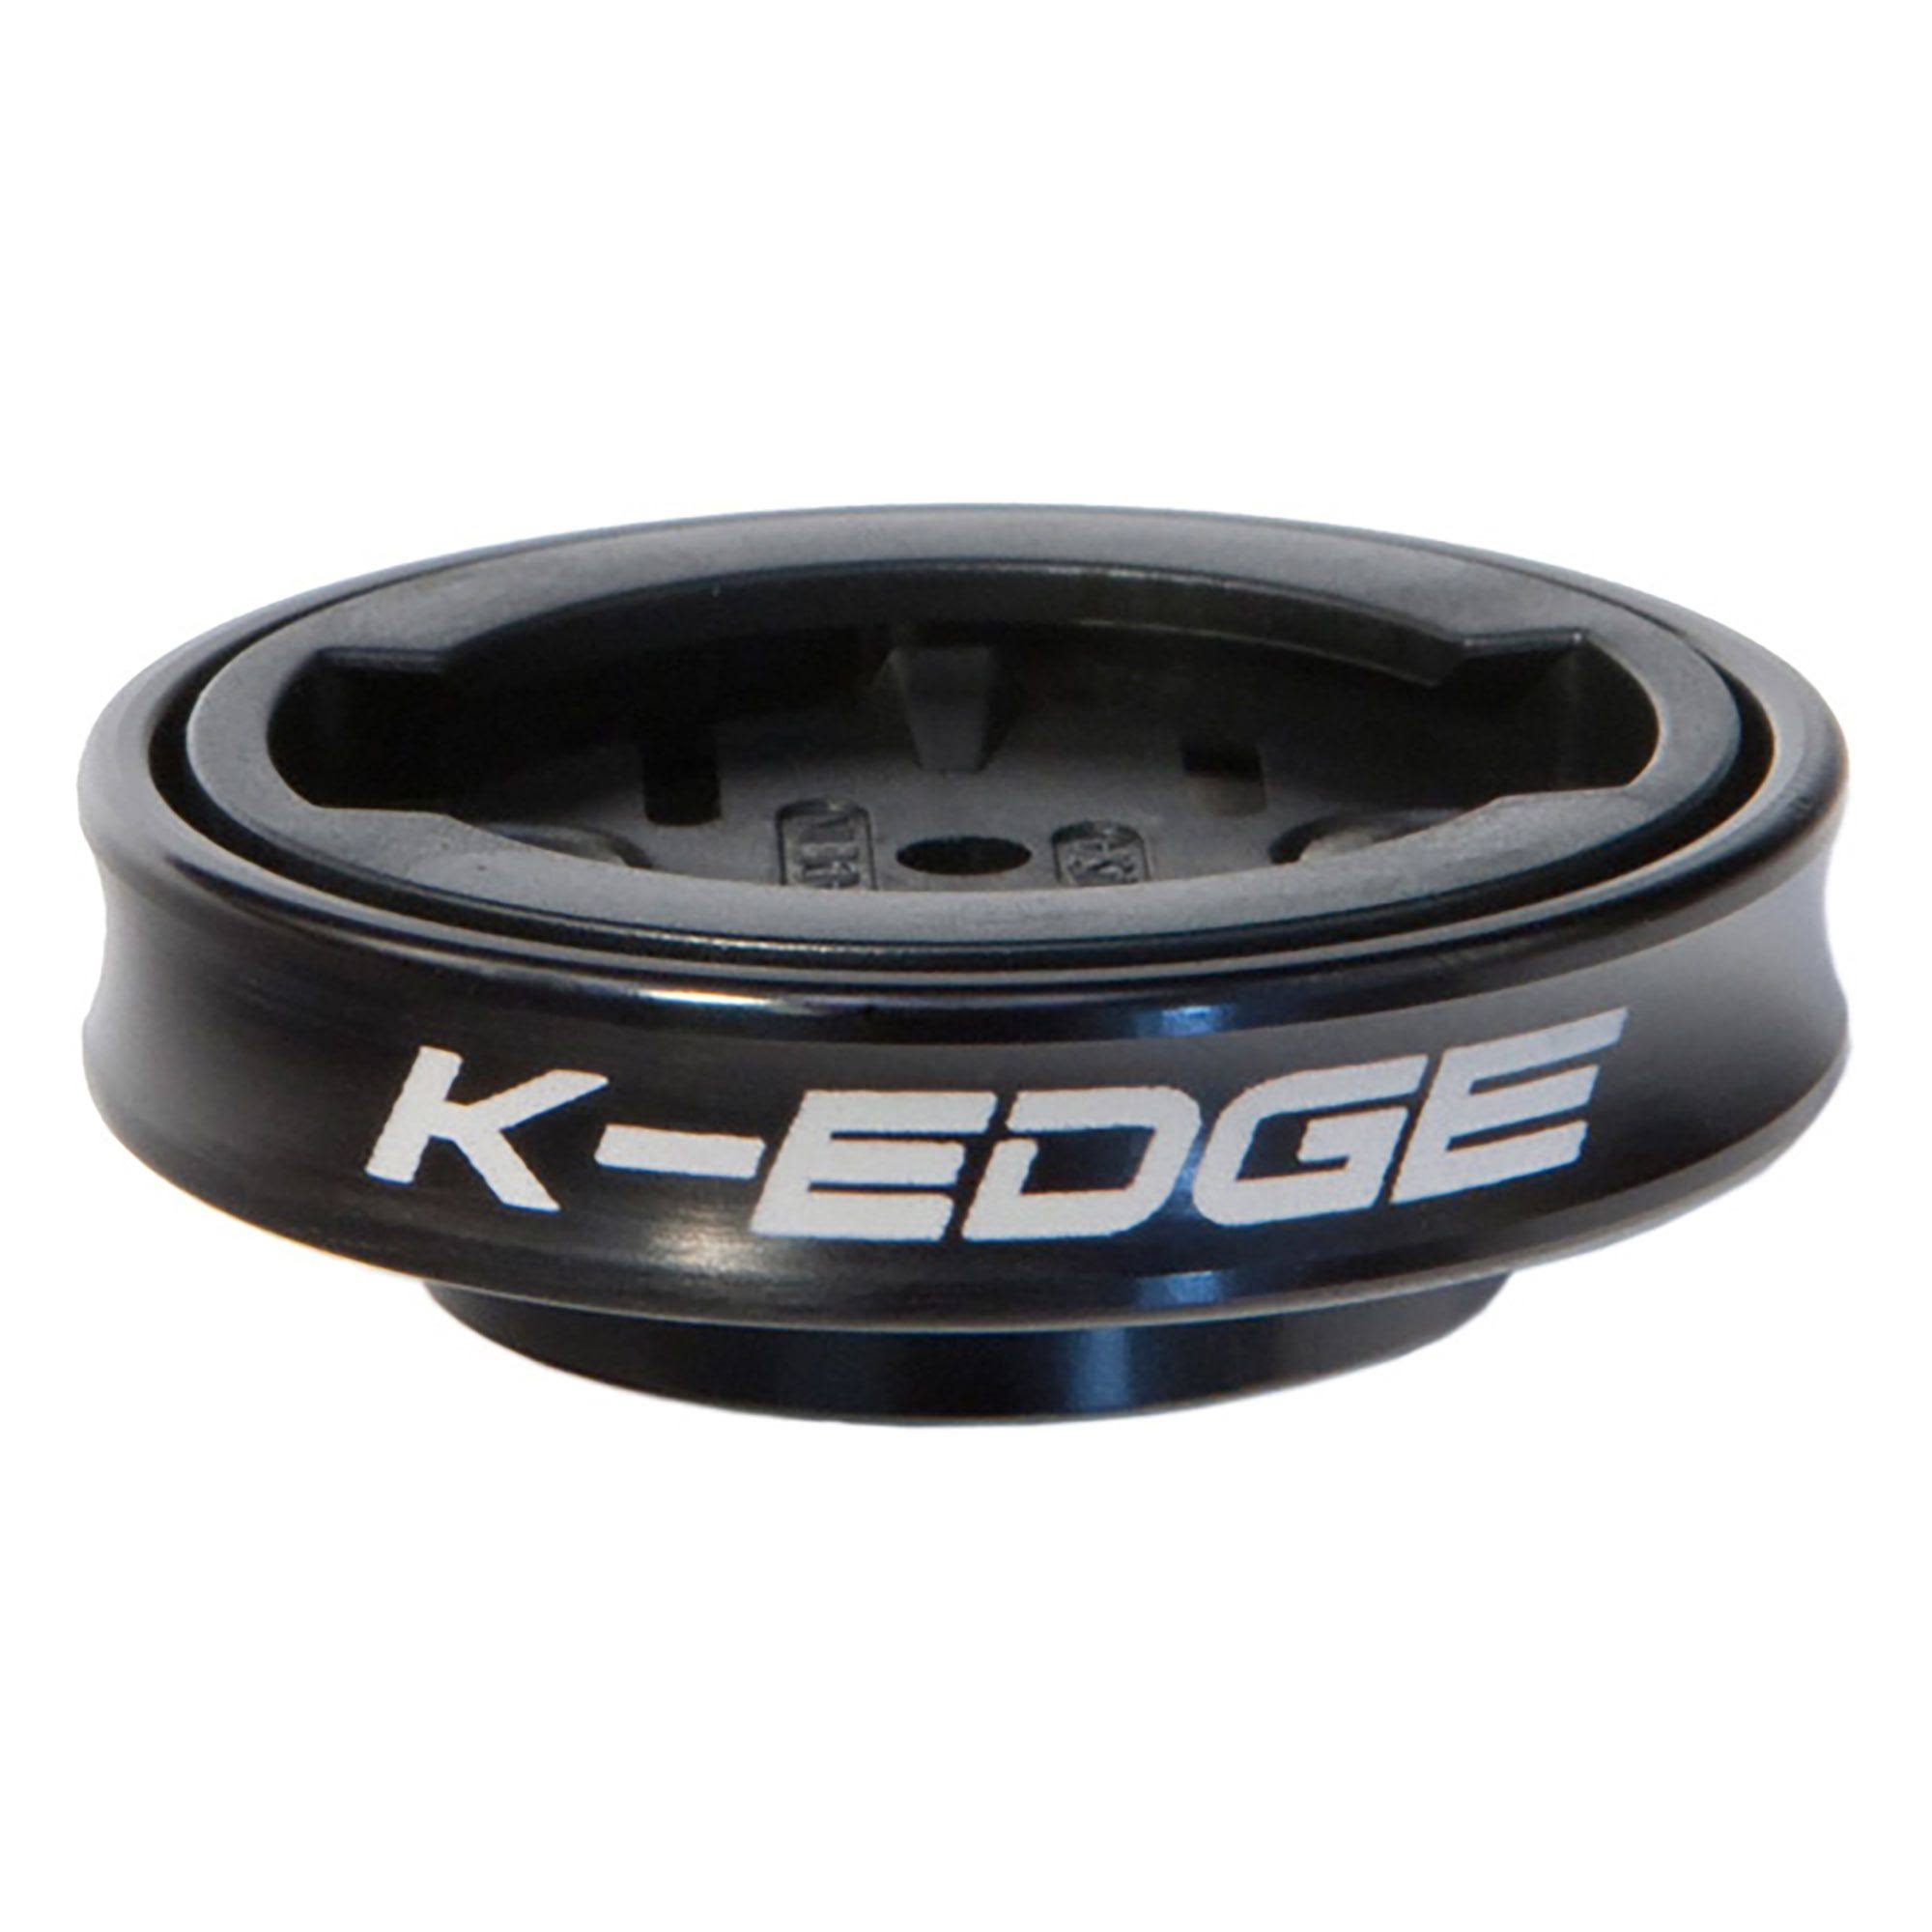 K-Edge Gravity Cap Garmin Mount - Black